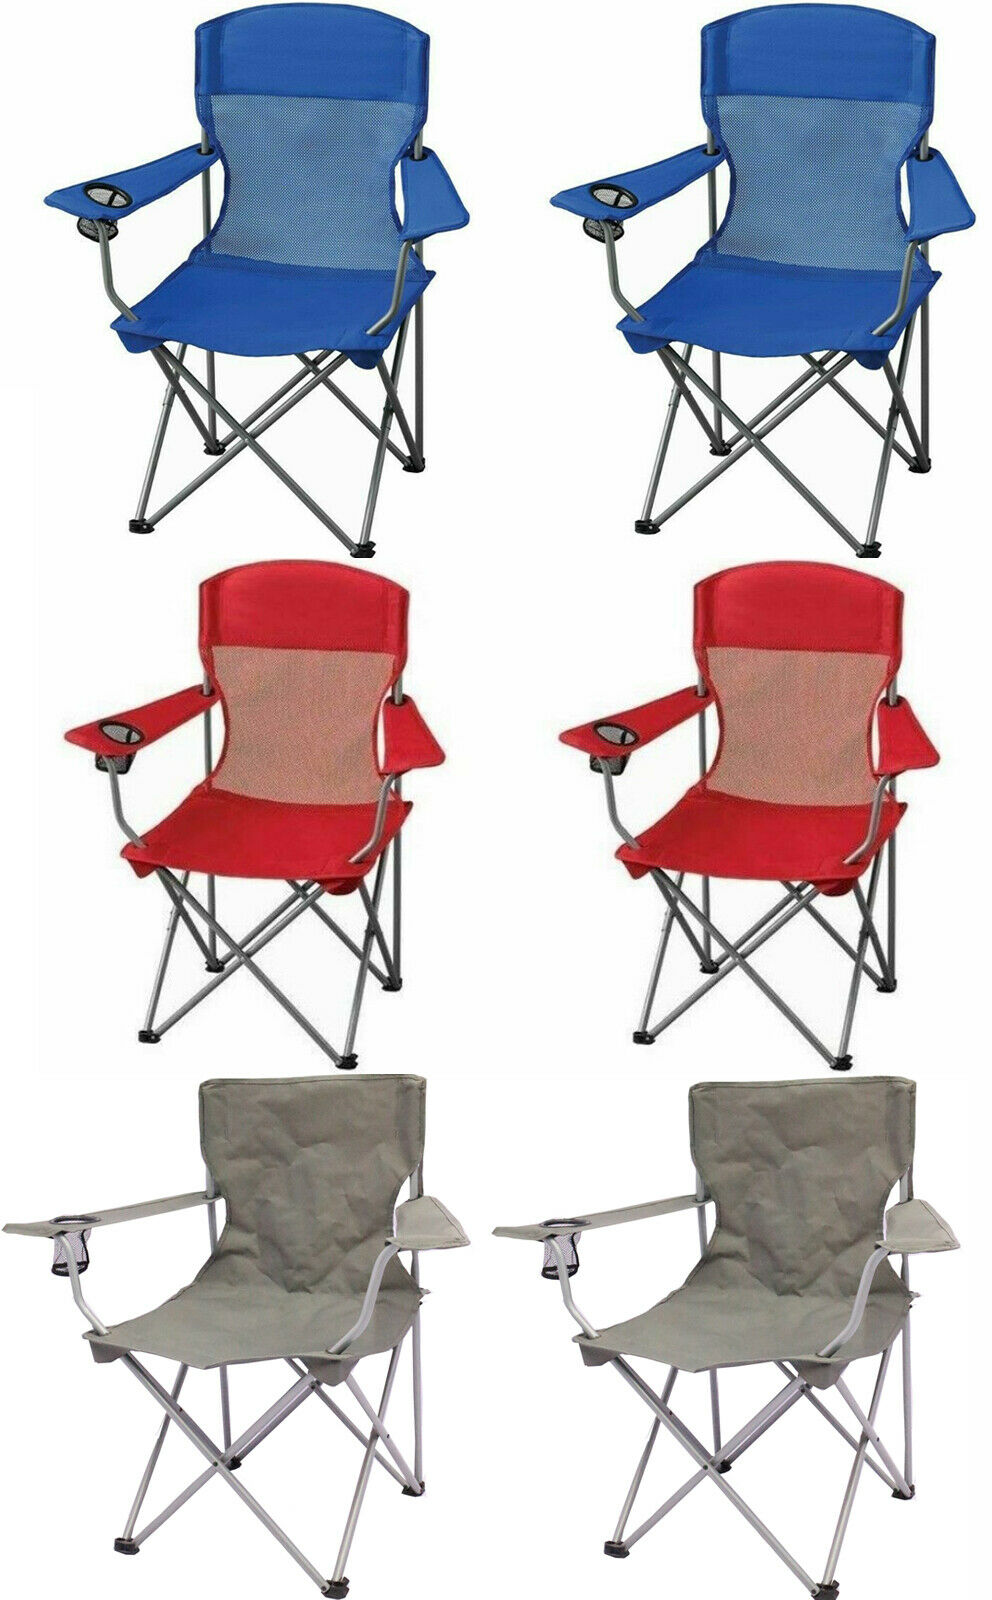 Folding Outdoor Portable Chair Seat Camping Fishing Picnic Beach Lawn (2 PACK)